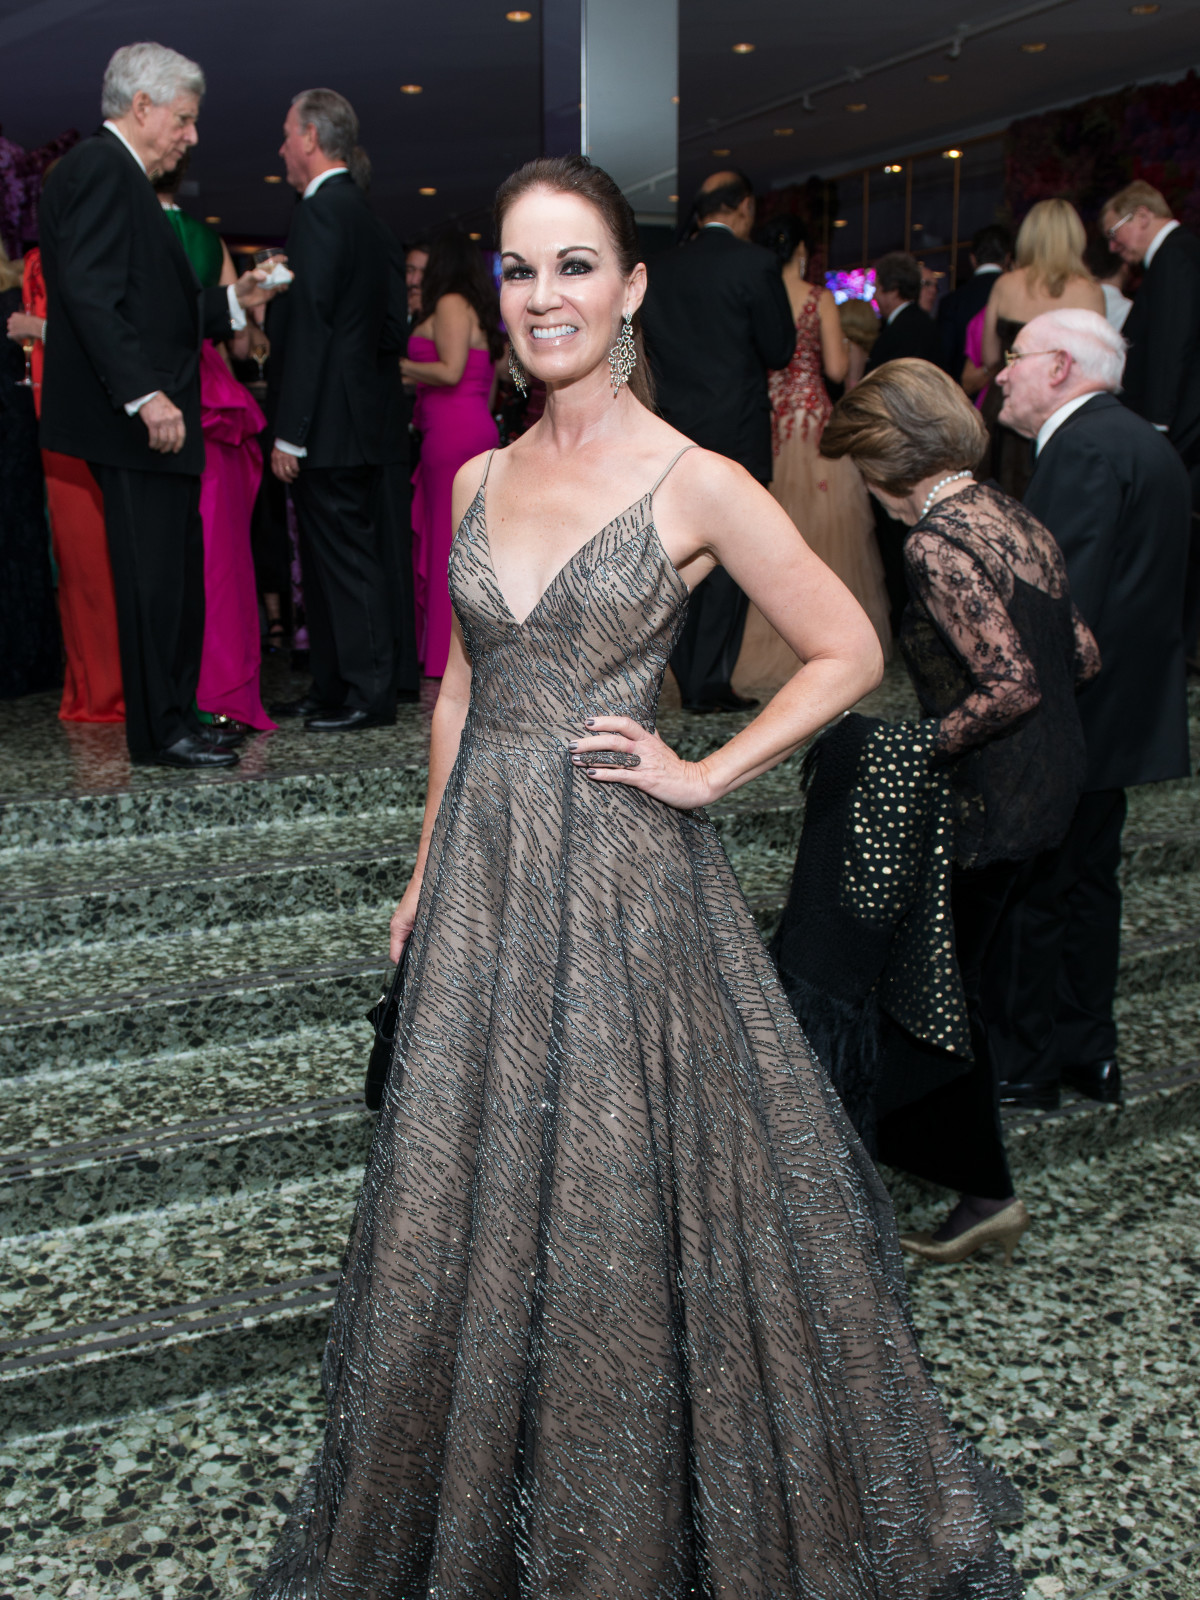 Houston, MFAH Oscar de la Renta Ball, Beth Muecke